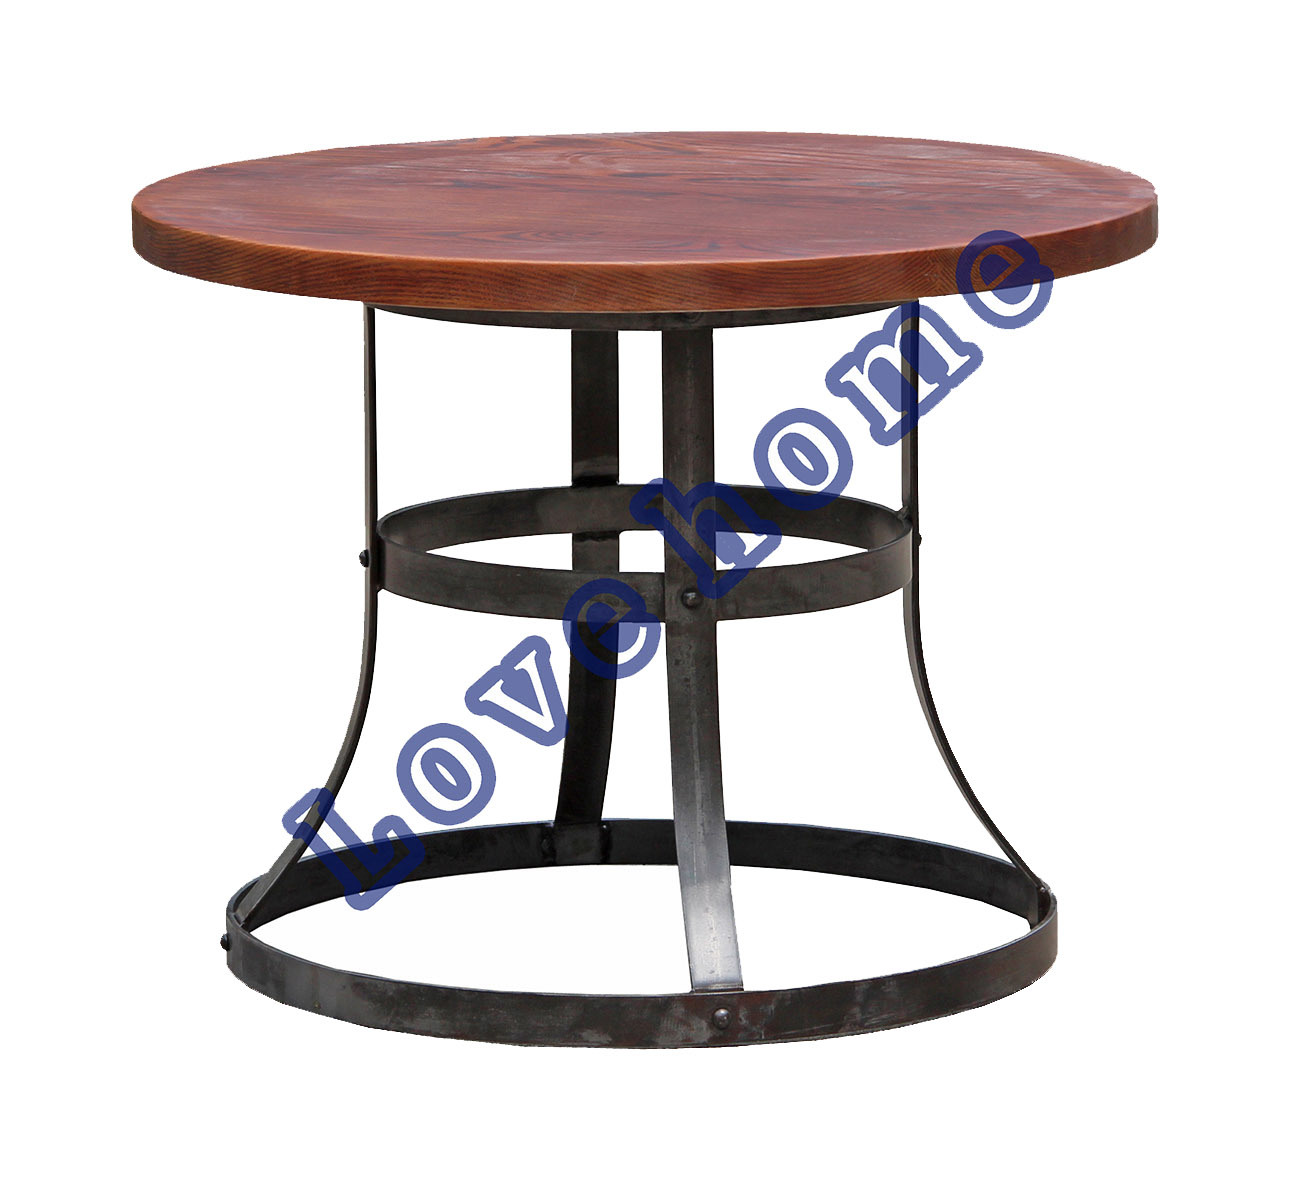 China Modern Industrial Round Metal Dining Restaurant Wooden Table China Table Wood Table